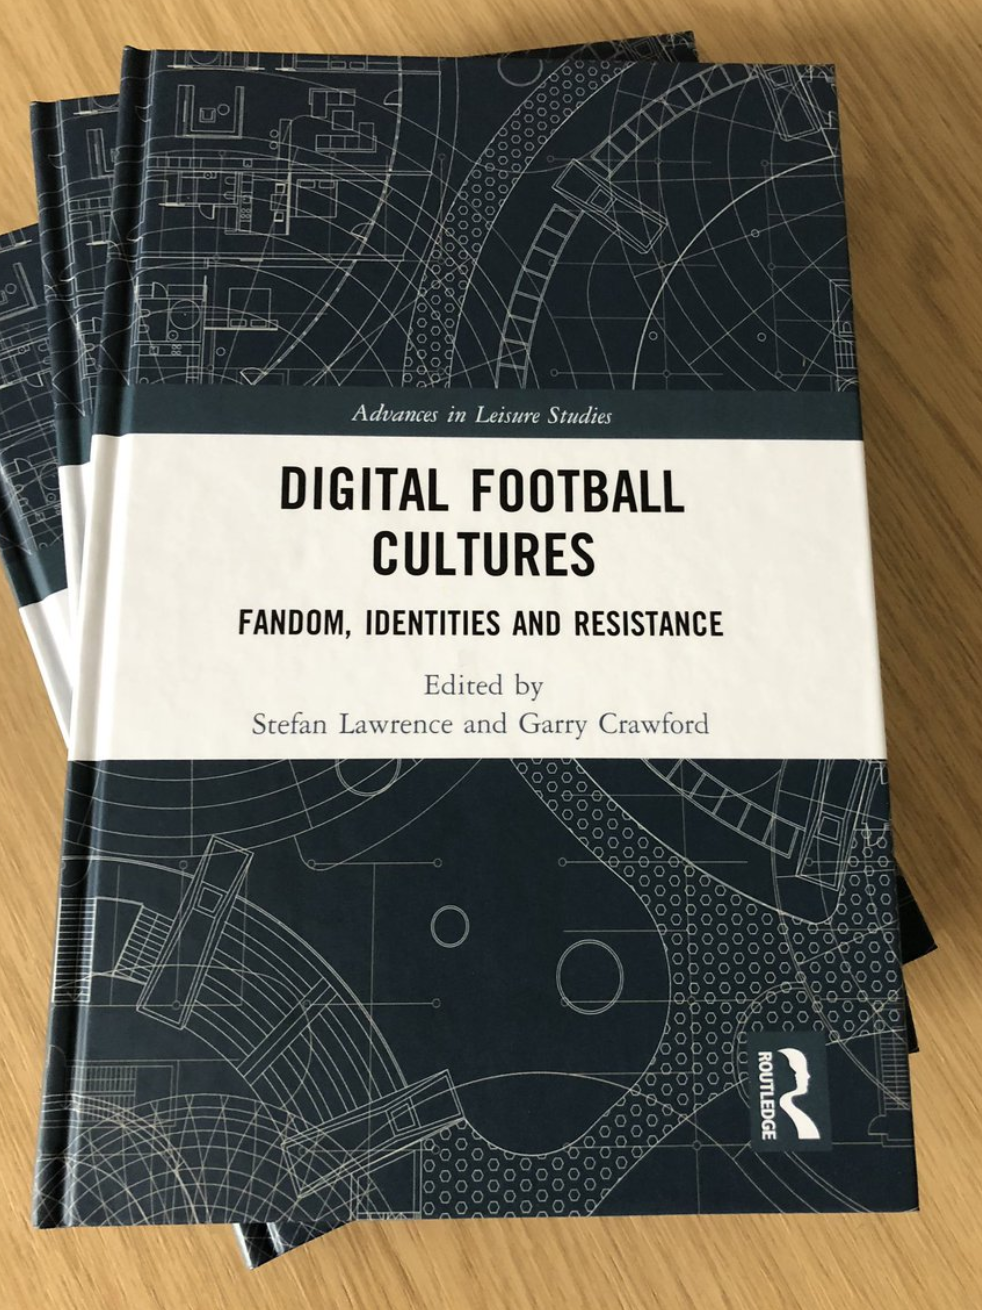 Lawrence, S. And Crawford, G. (Eds.) (2018) Digital Football Cultures: Fandom, Identities and Resistance. London & New York: Routledge.